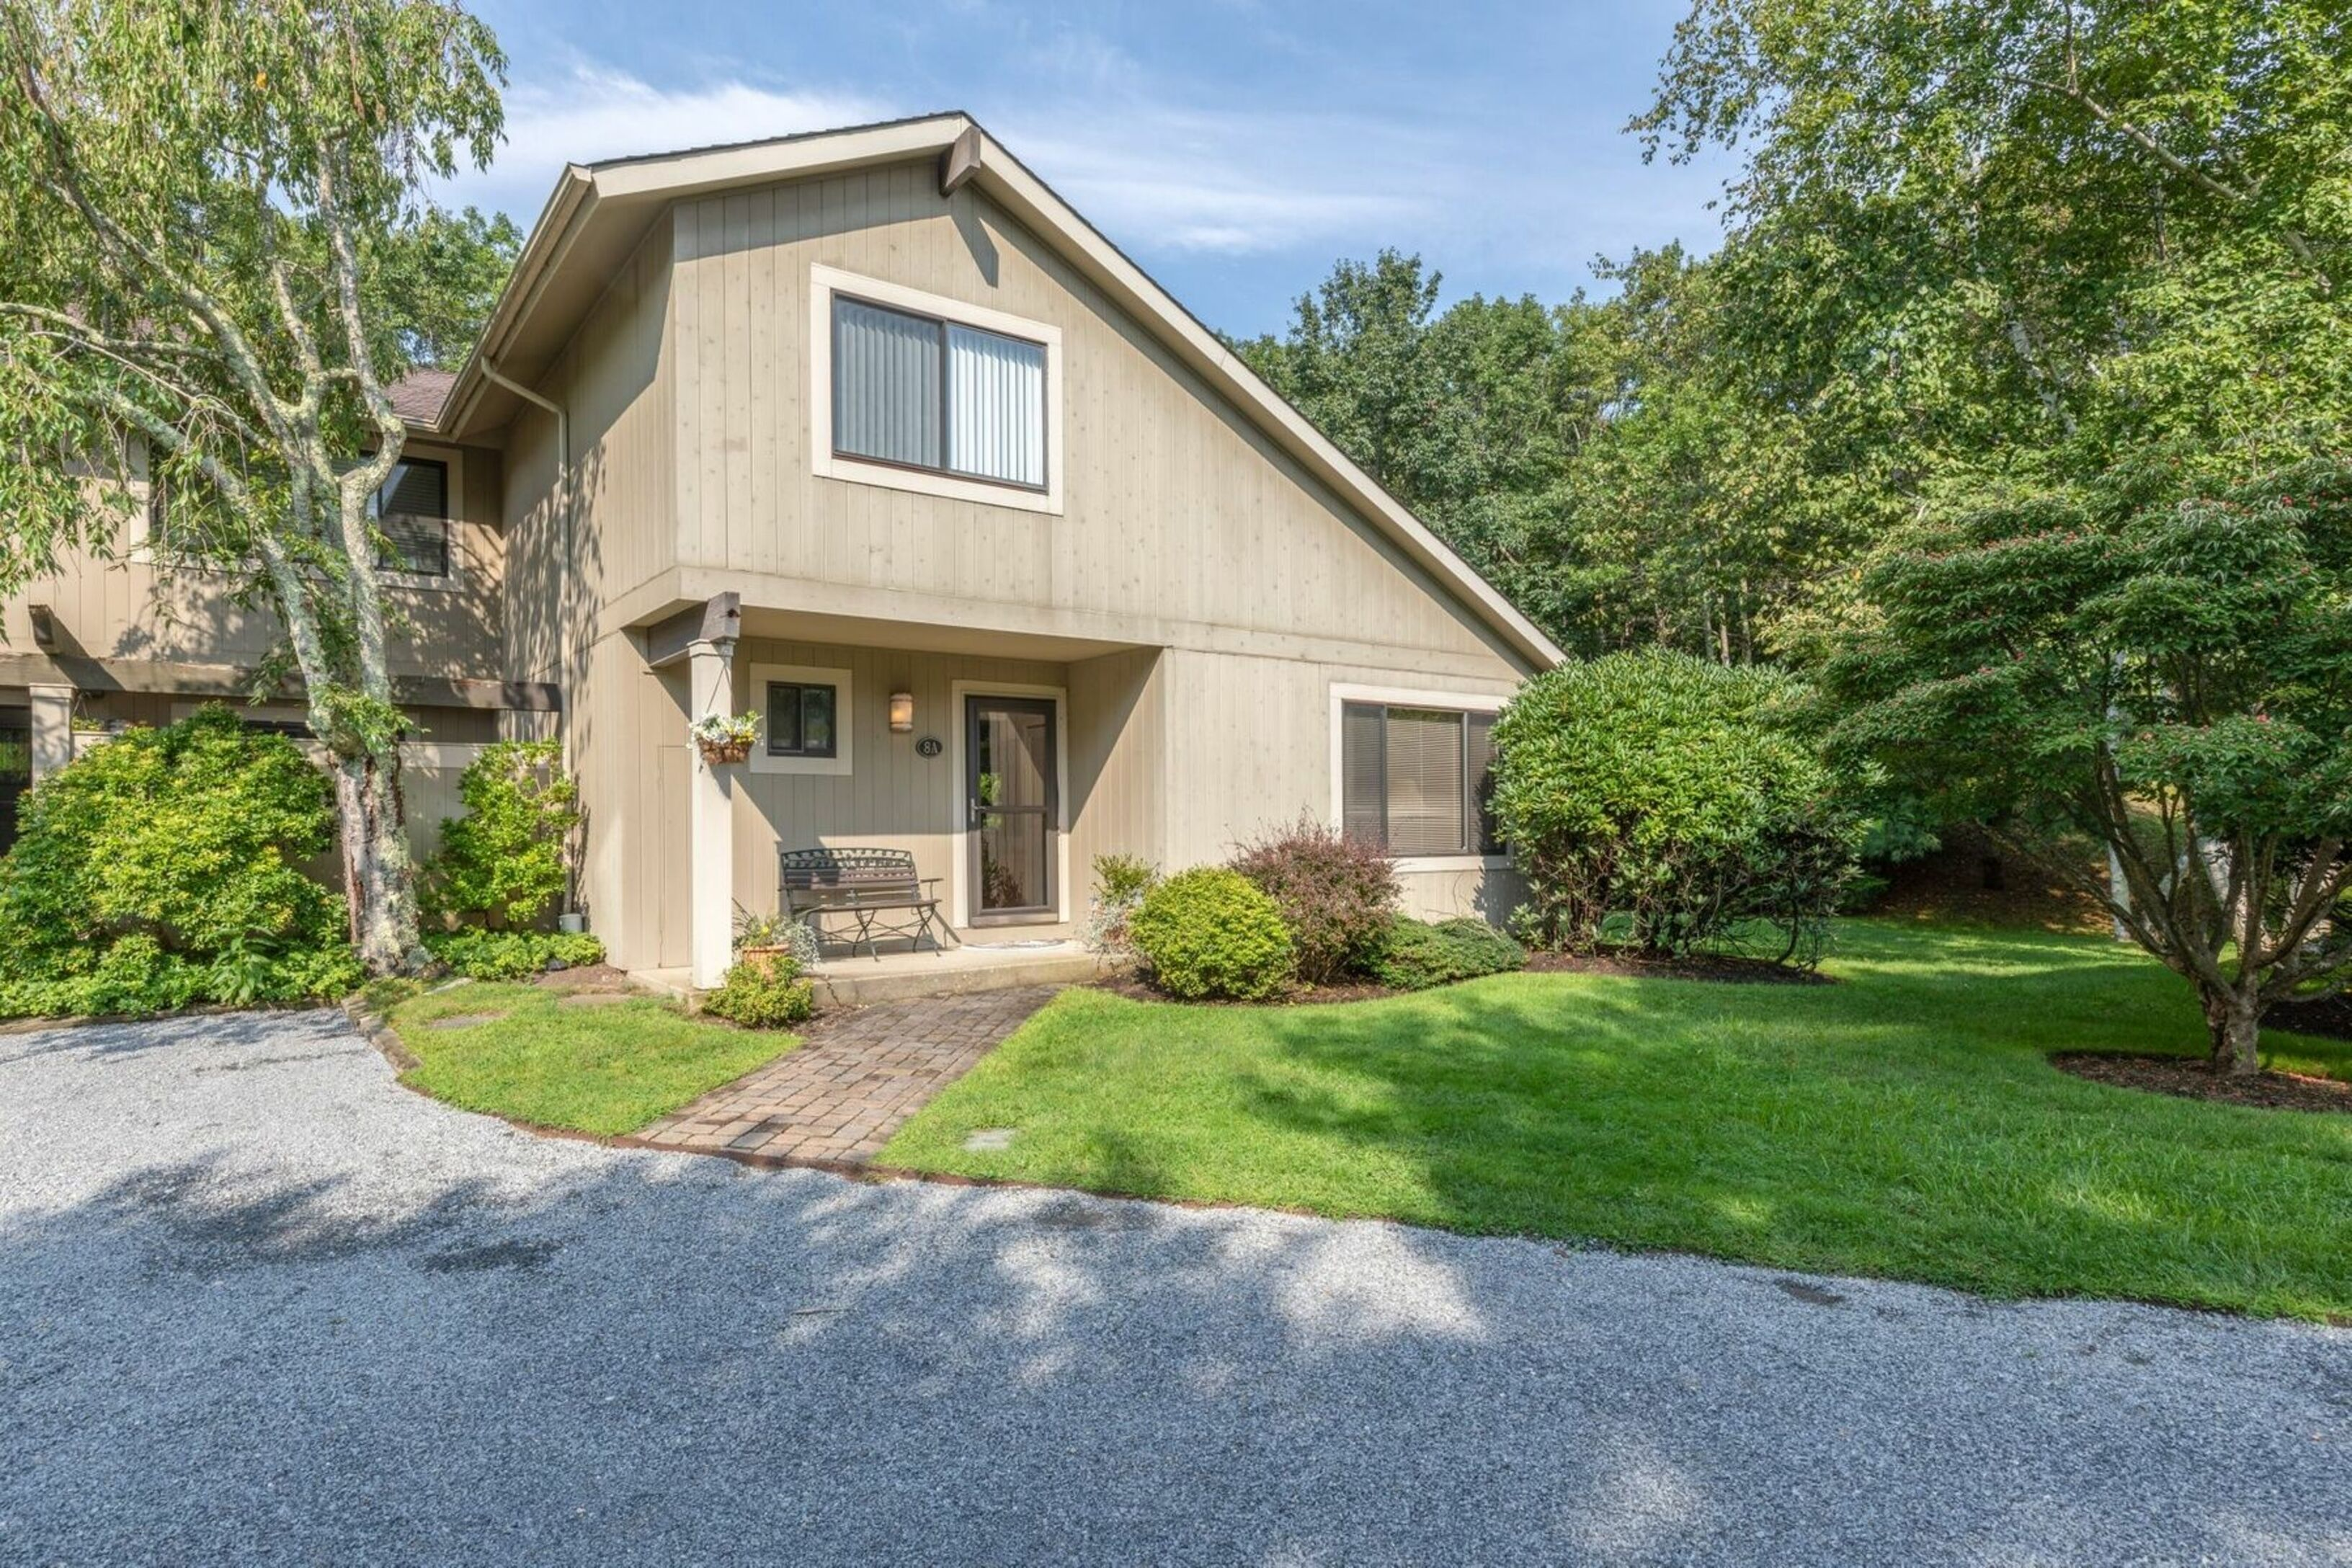 197 Treescape Dr, Cluster #4, Unit 8a - East Hampton NW, New York